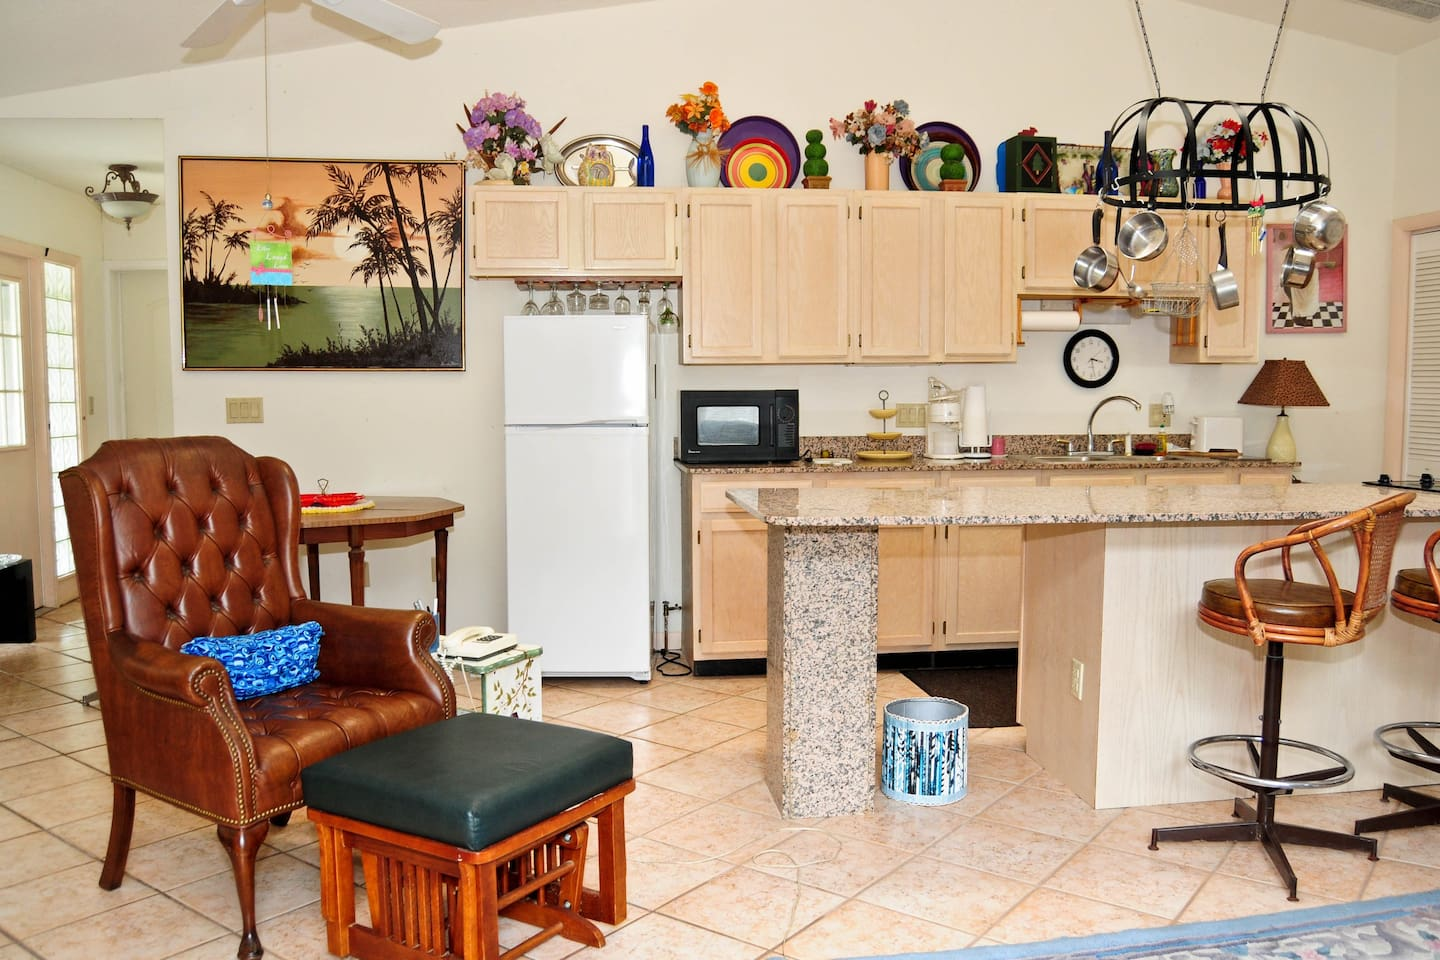 Full kitchen with just everything you need for a long stay